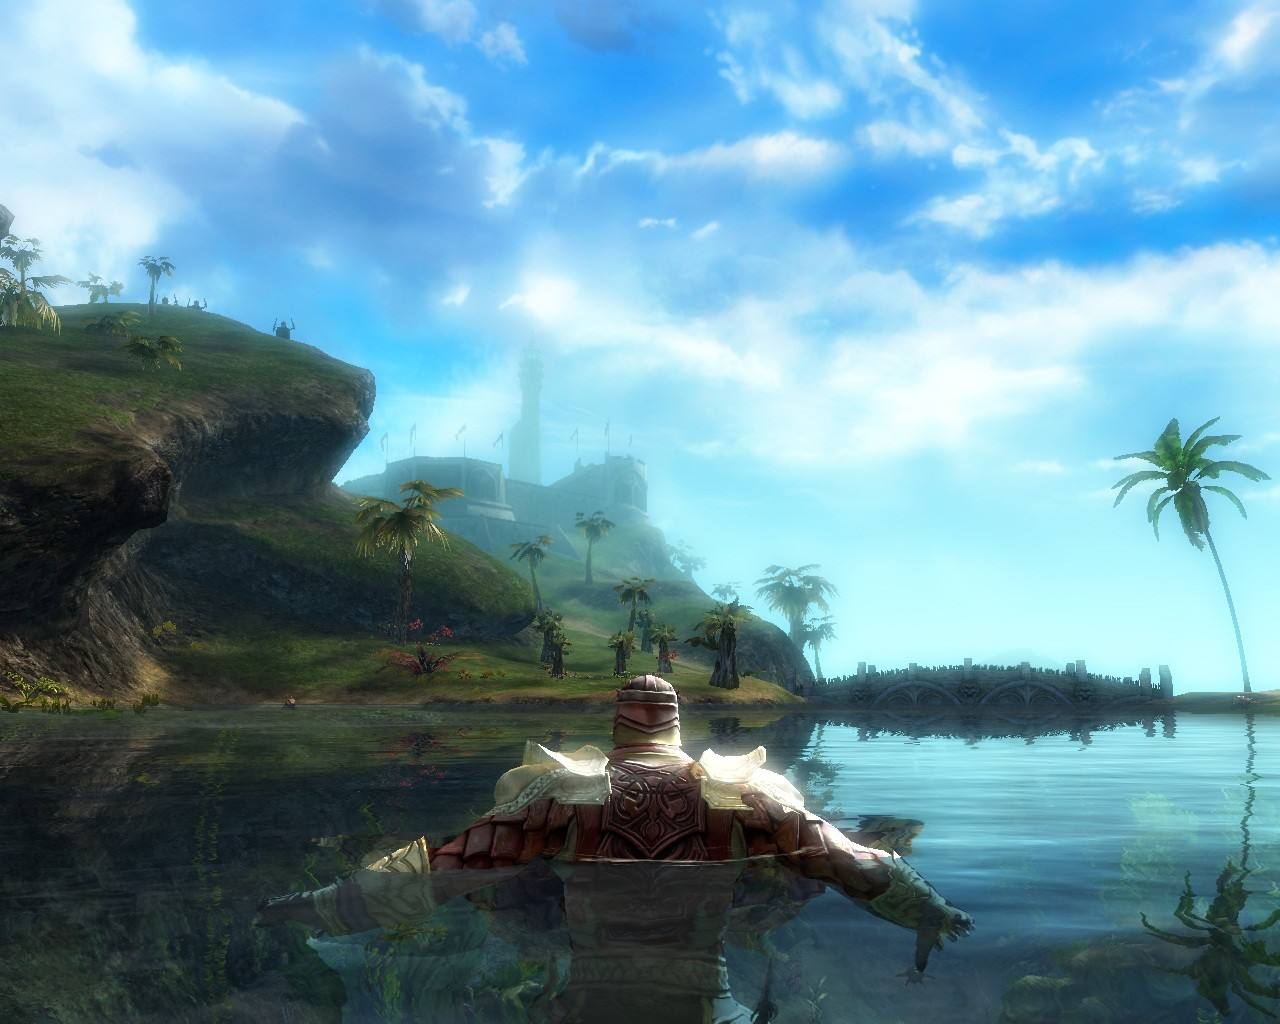 Guild Wars 2 - Oh! The views in GW2 ...